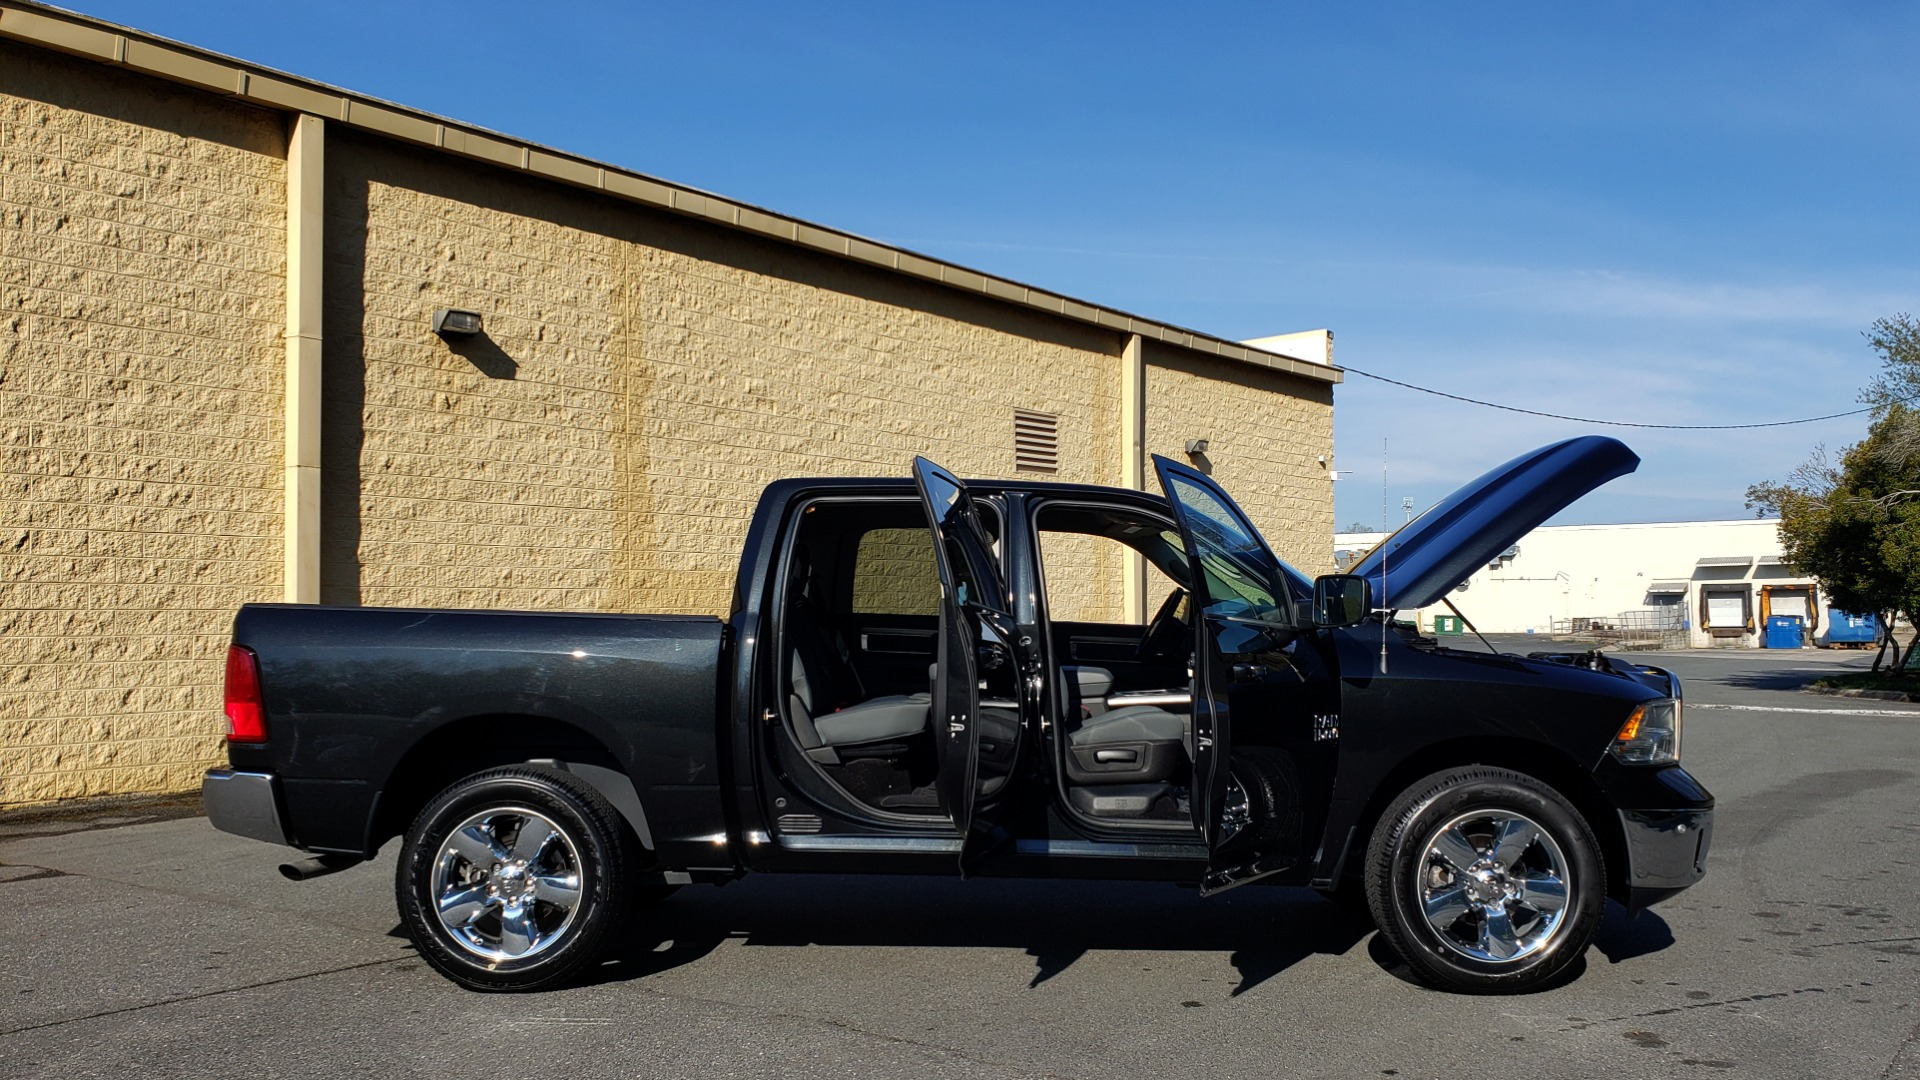 Used 2017 Ram 1500 BIG HORN CREW CAB 4X4 / 3.6L V6 / 8-SPD AUTO / WIFI HOTSPOT for sale Sold at Formula Imports in Charlotte NC 28227 9